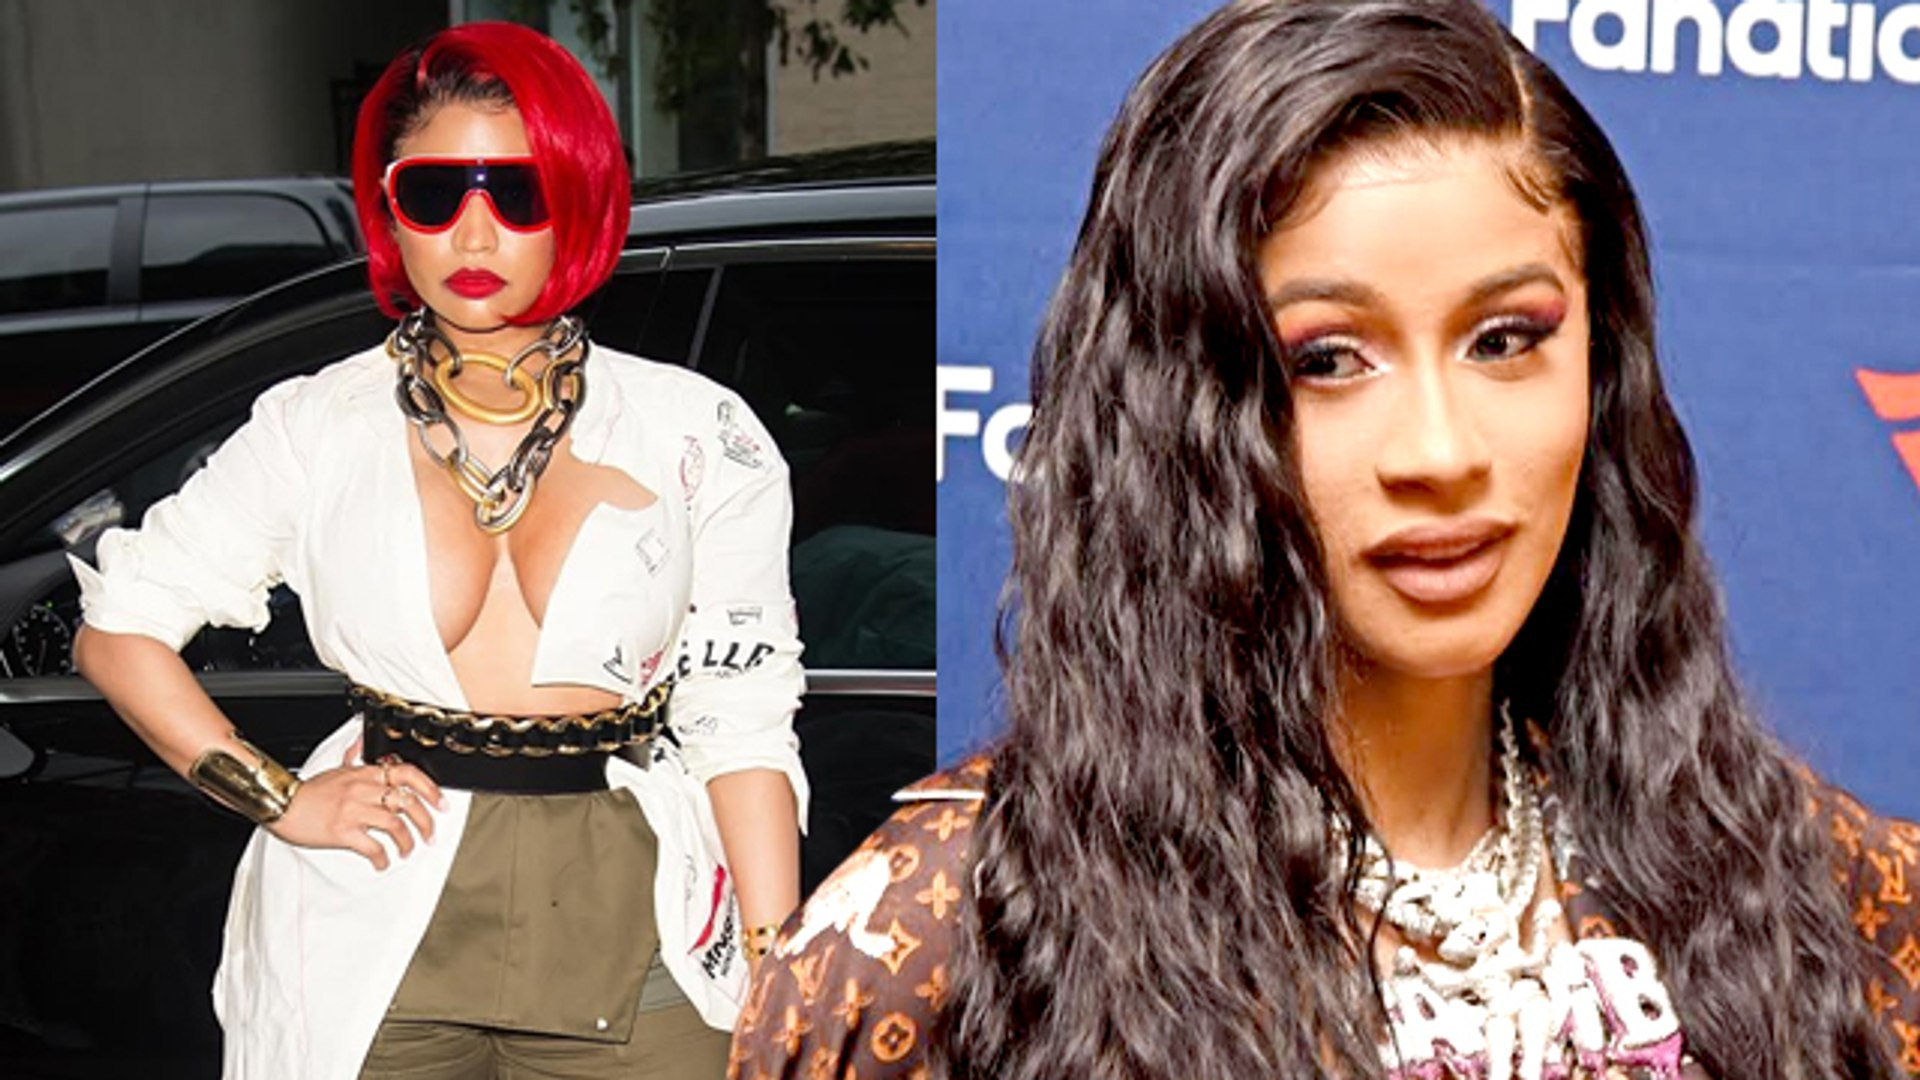 Here's What Cardi B Thinks About Collaborating With Nicki Minaj!